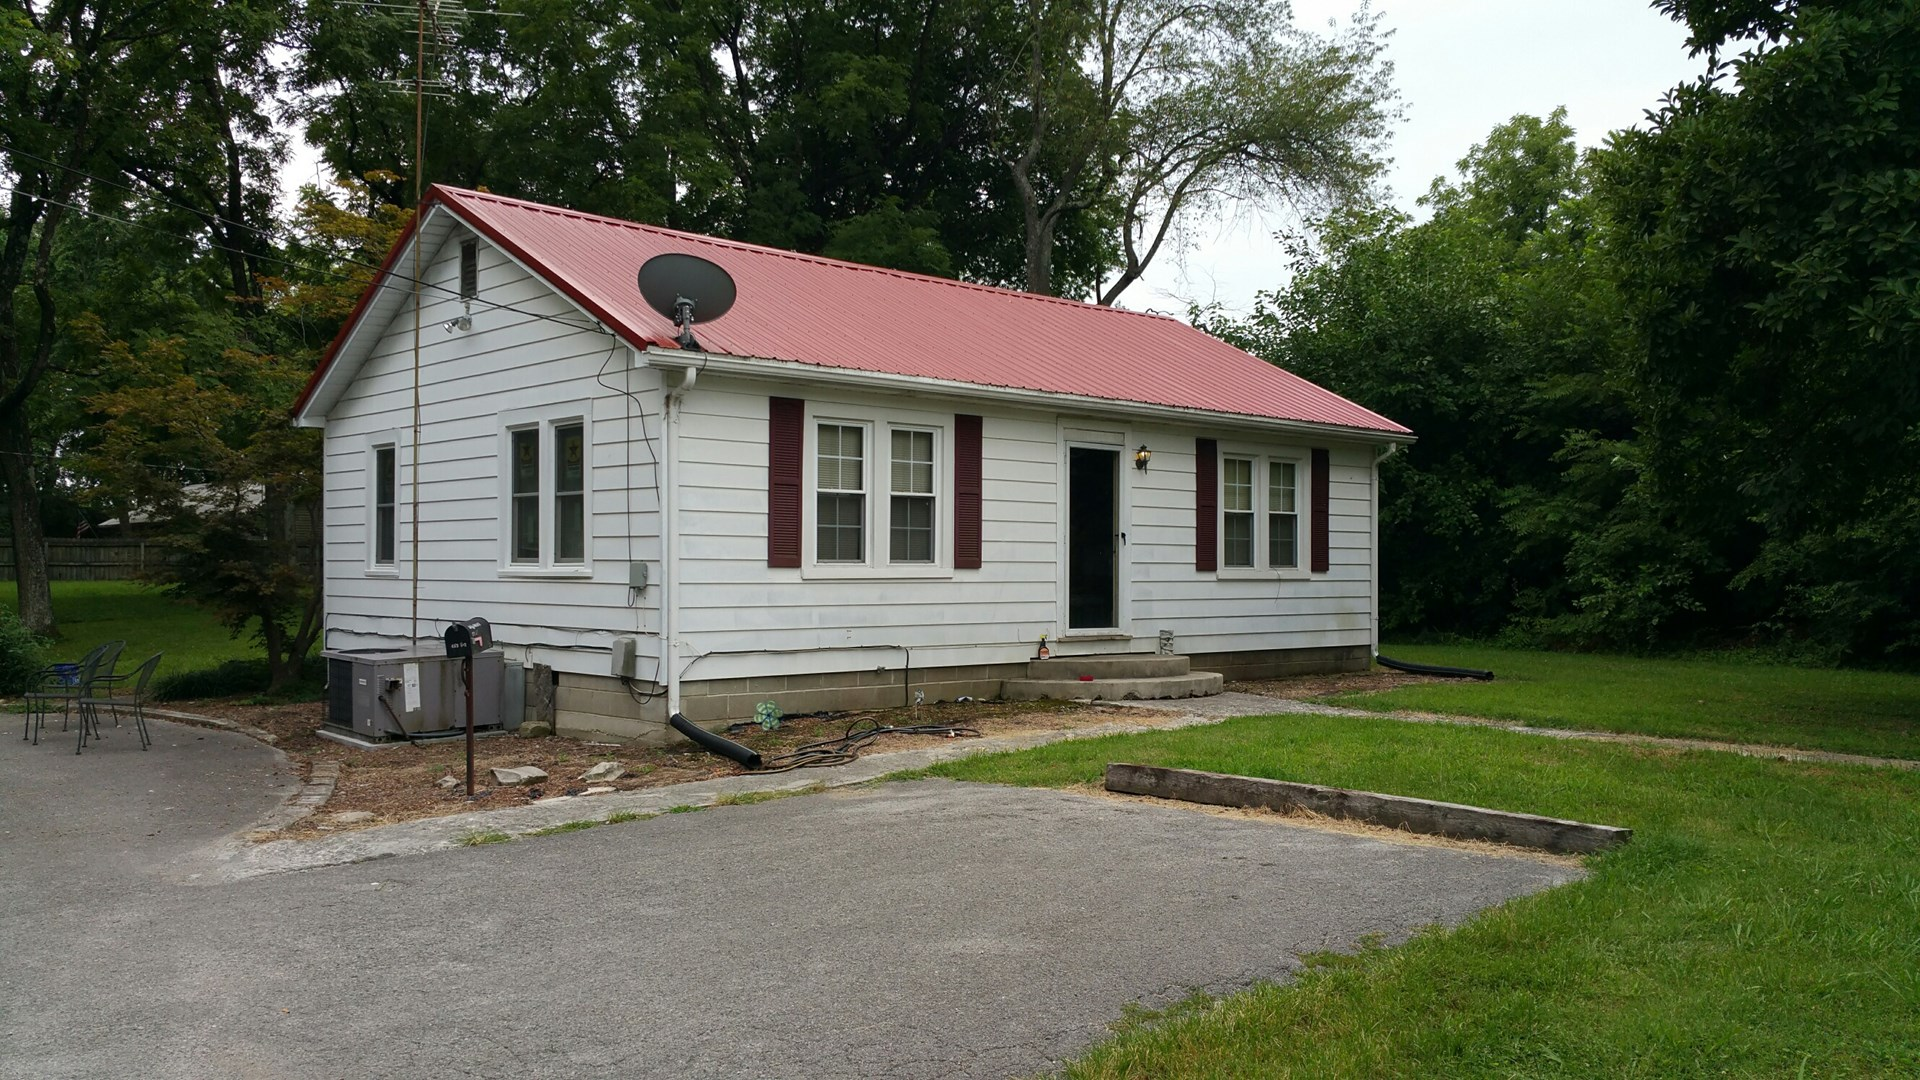 House for sale in Franklin Ky